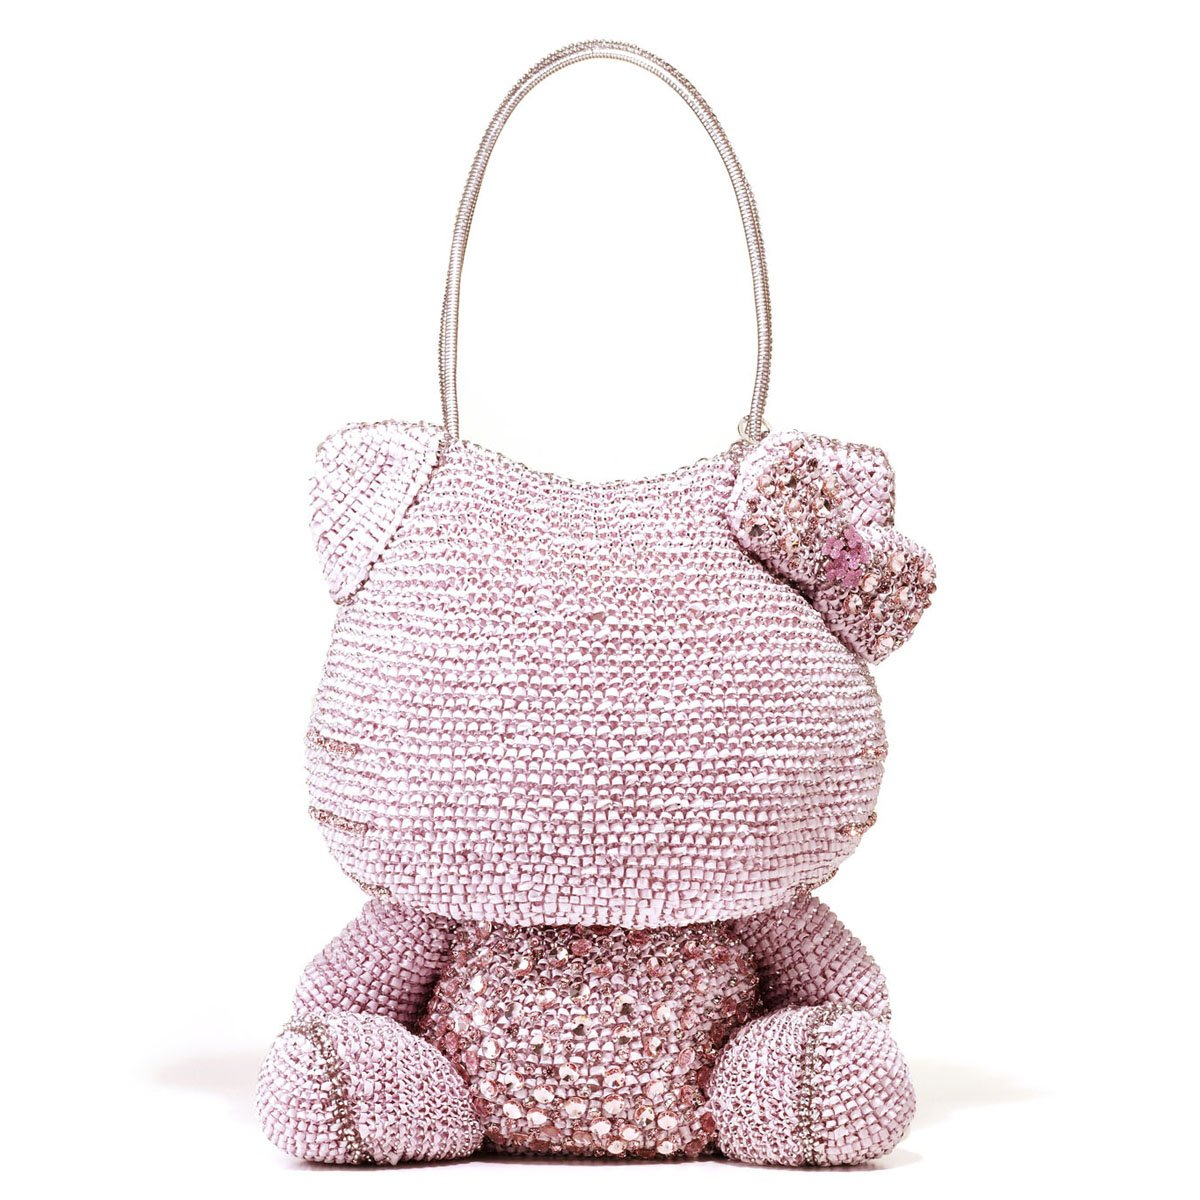 Hello Kitty x ANTEPRIMA Pink Shoulder Bag Silver pink Wire bag from JAPAN NEWF/S